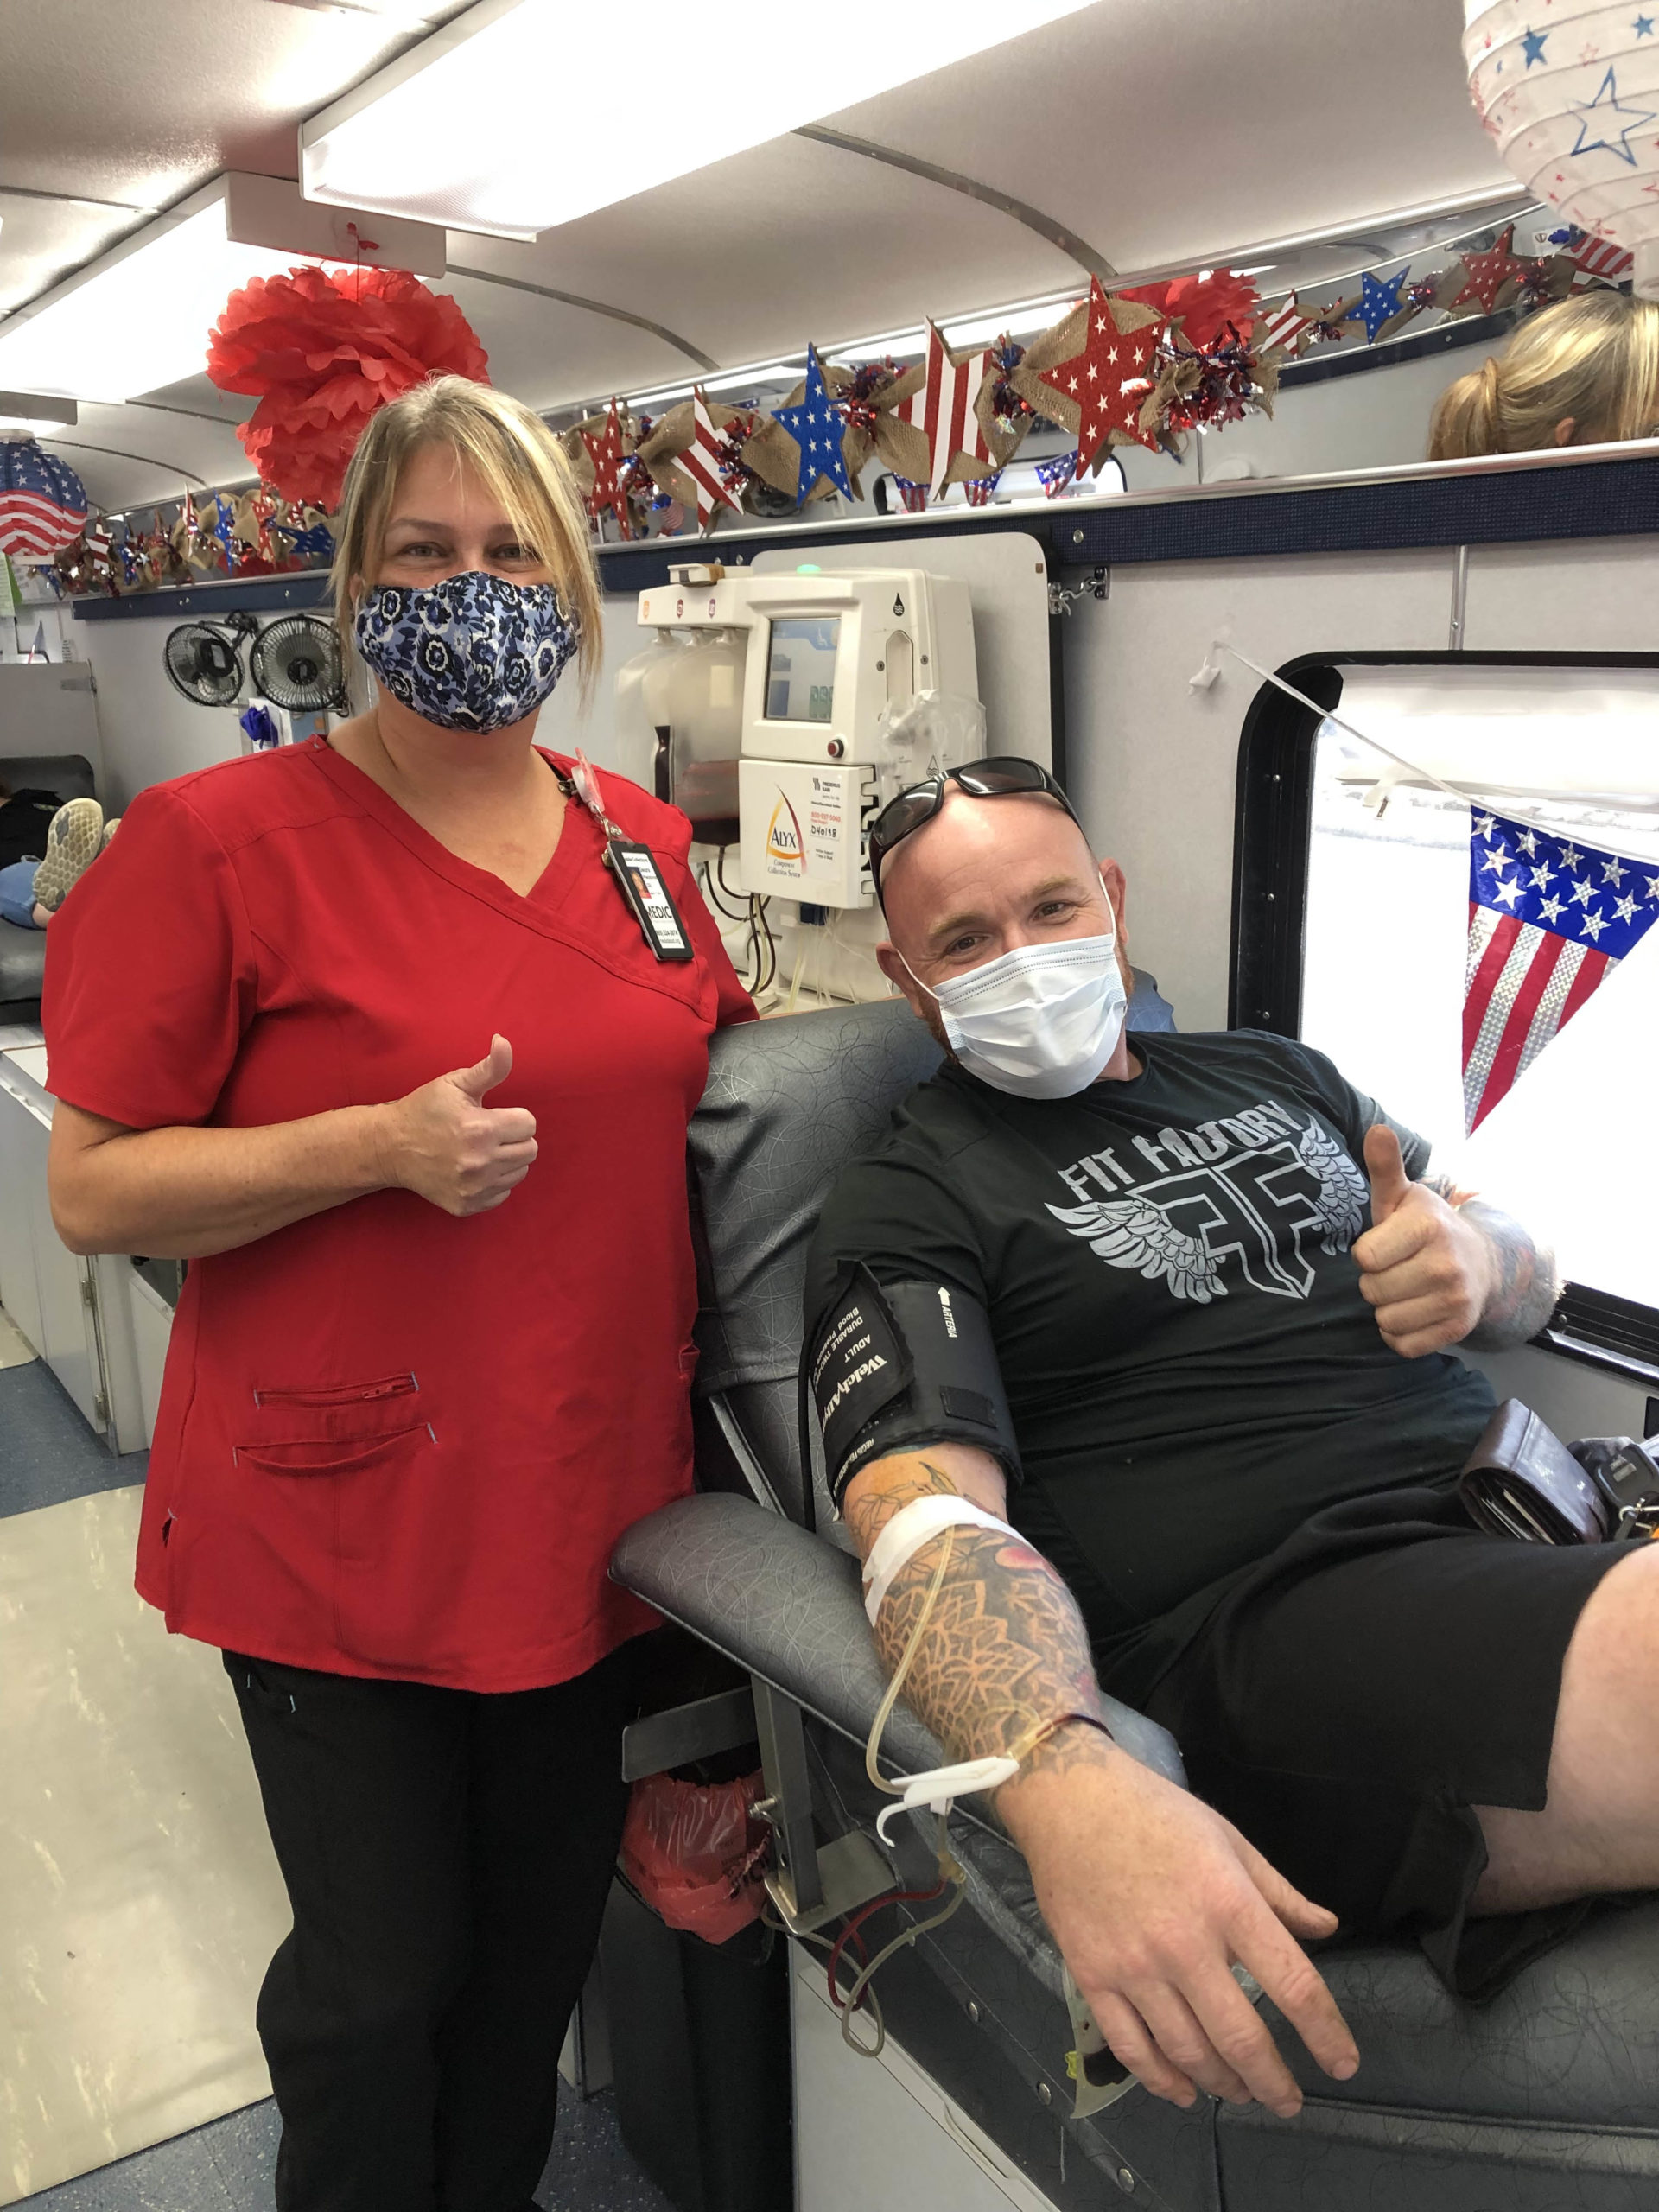 Two thumbs up for Eddie Check 2021, a free PSA testing event and blood drive